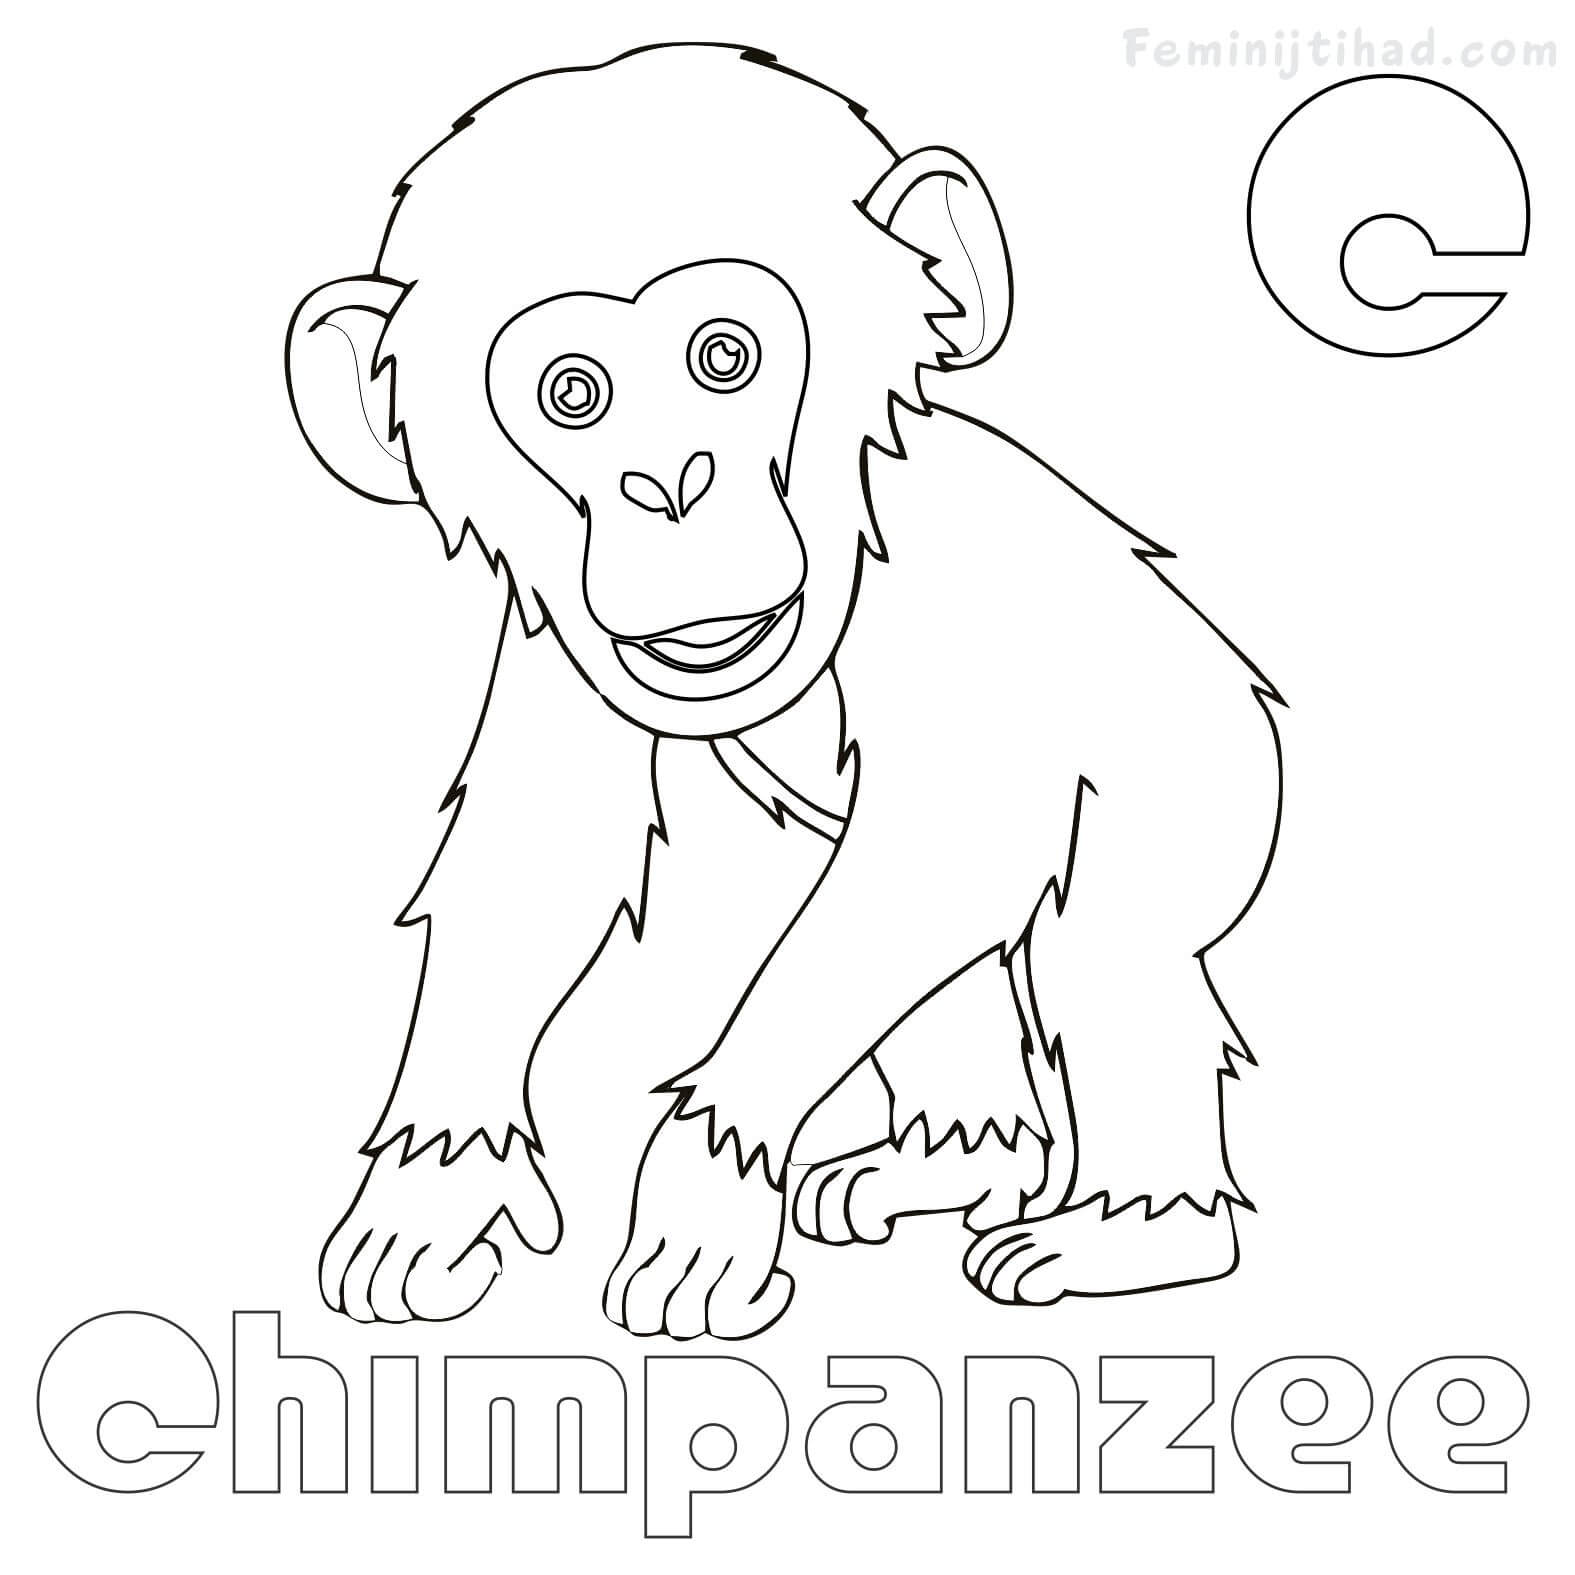 1575x1575 Luxury Chimpanzee Coloring Page Pictures